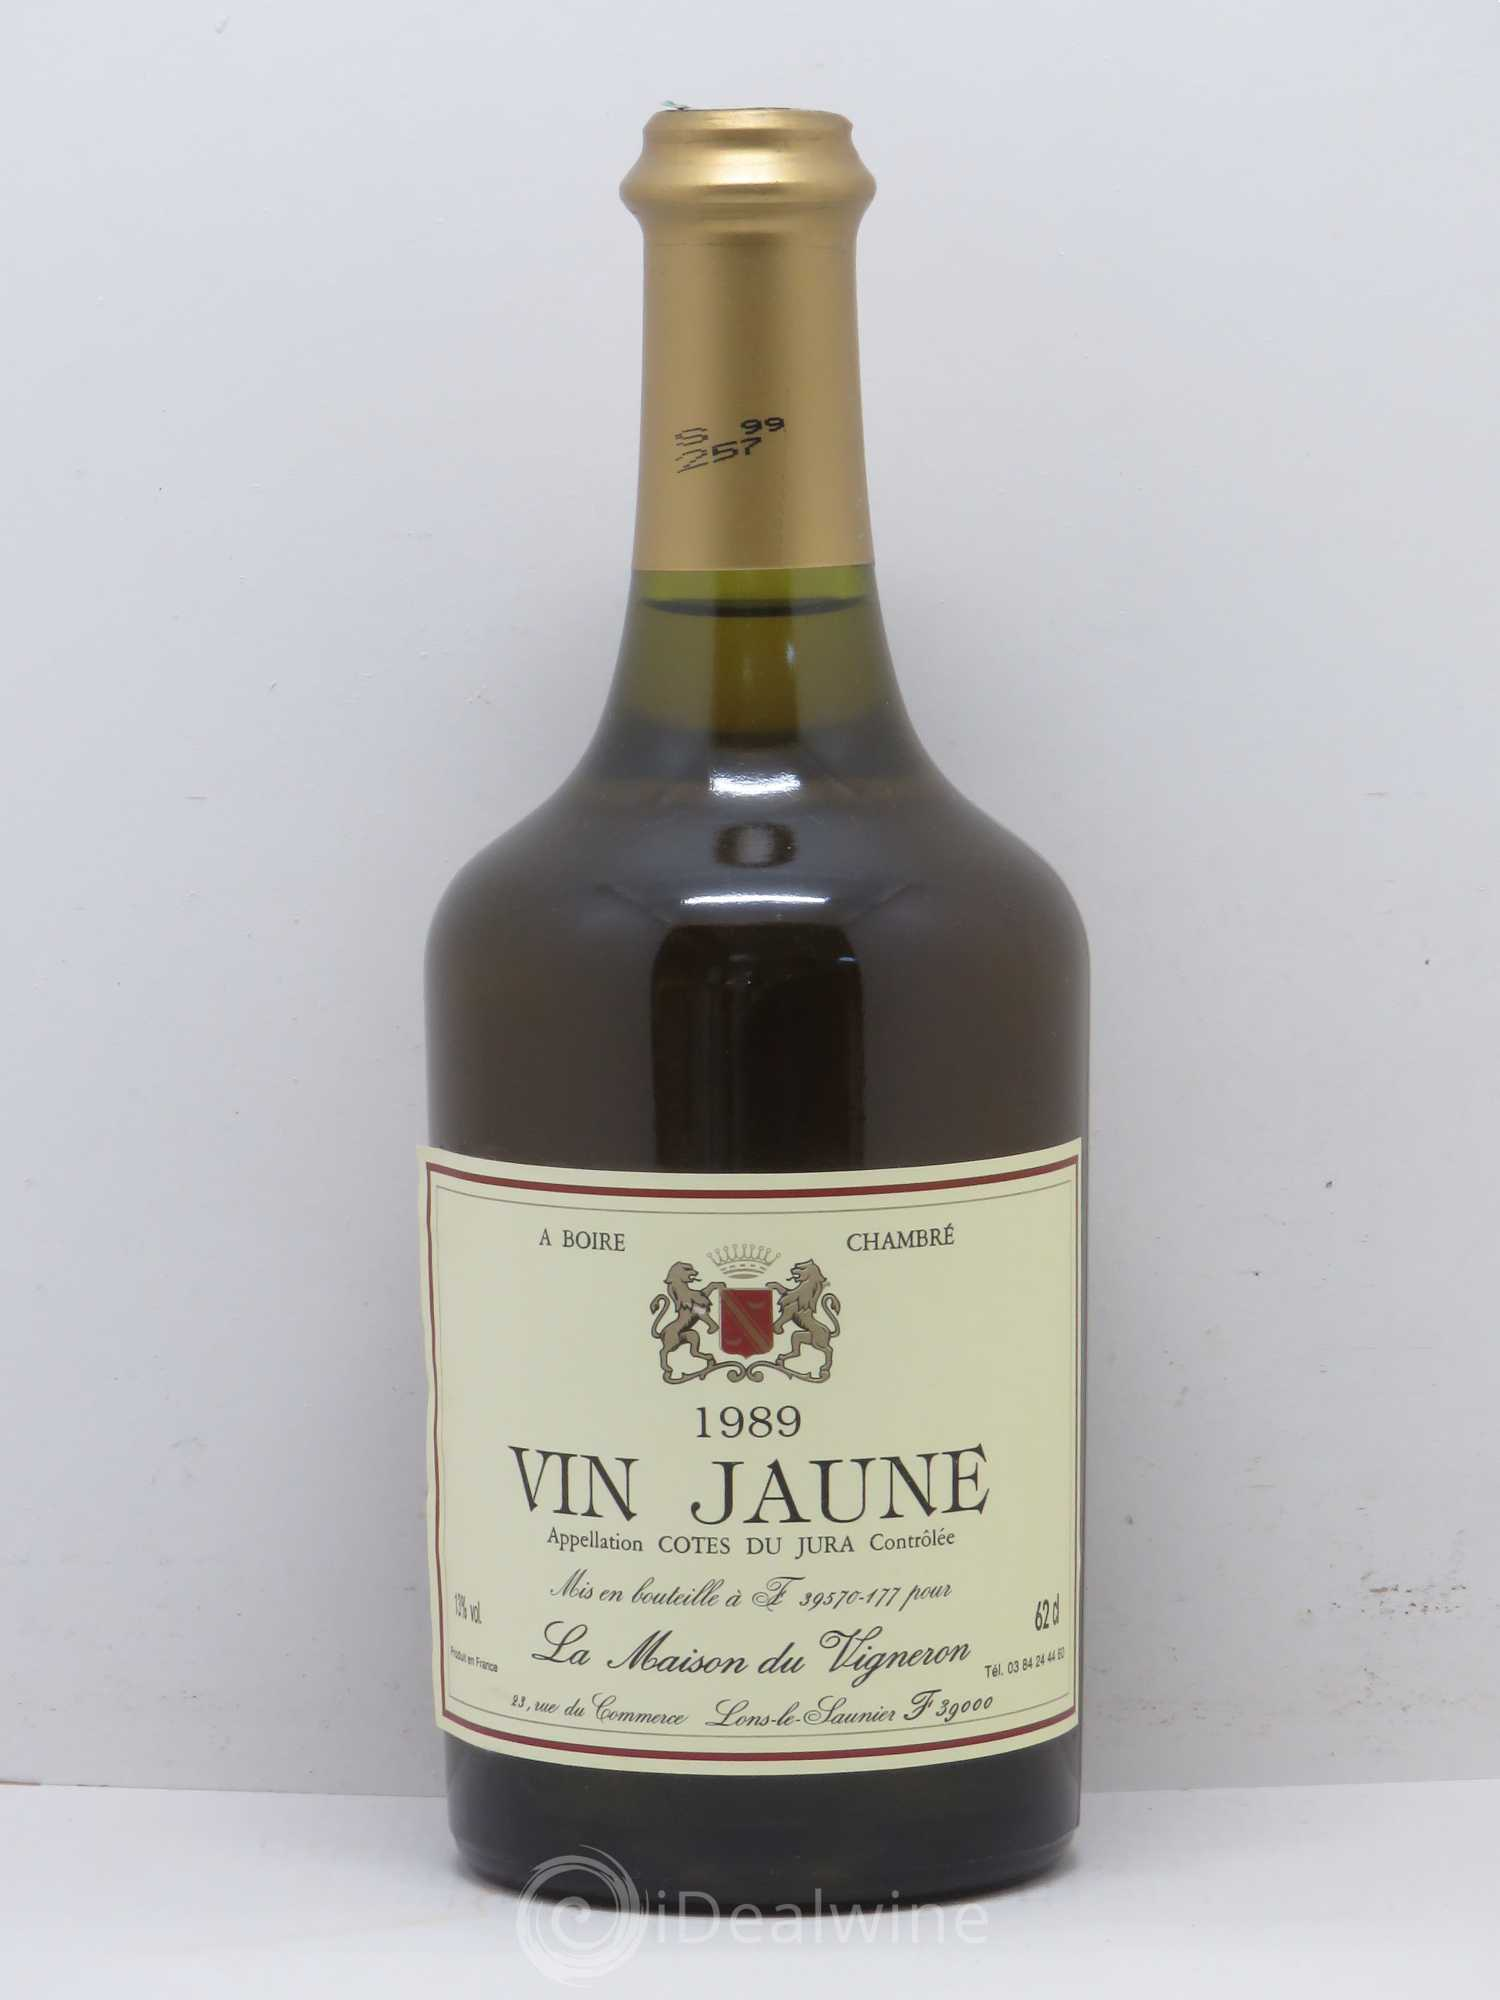 acheter jura vin jaune la maison du vigneron 1989 lot 1529. Black Bedroom Furniture Sets. Home Design Ideas